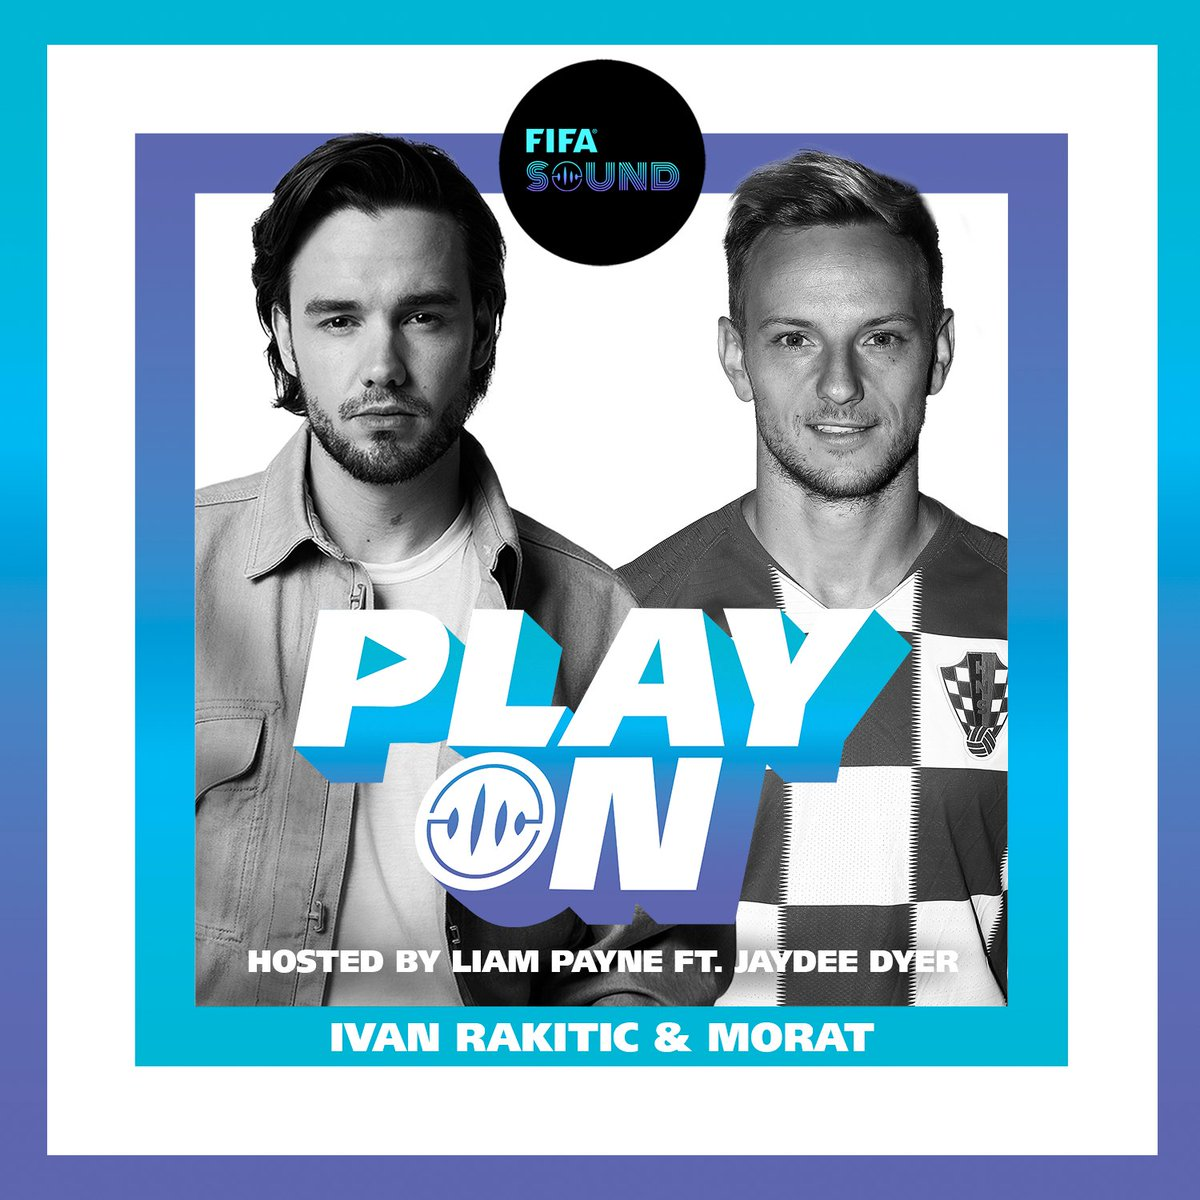 Replying to @FIFAcom: The new FIFA PlayOn podcast is live!   Tune in to Episode 1 now to hear @LiamPayne and @J_Dyer_Official chat with @IvanRakitic and @MoratBanda  #FIFASOUND #PLAYON